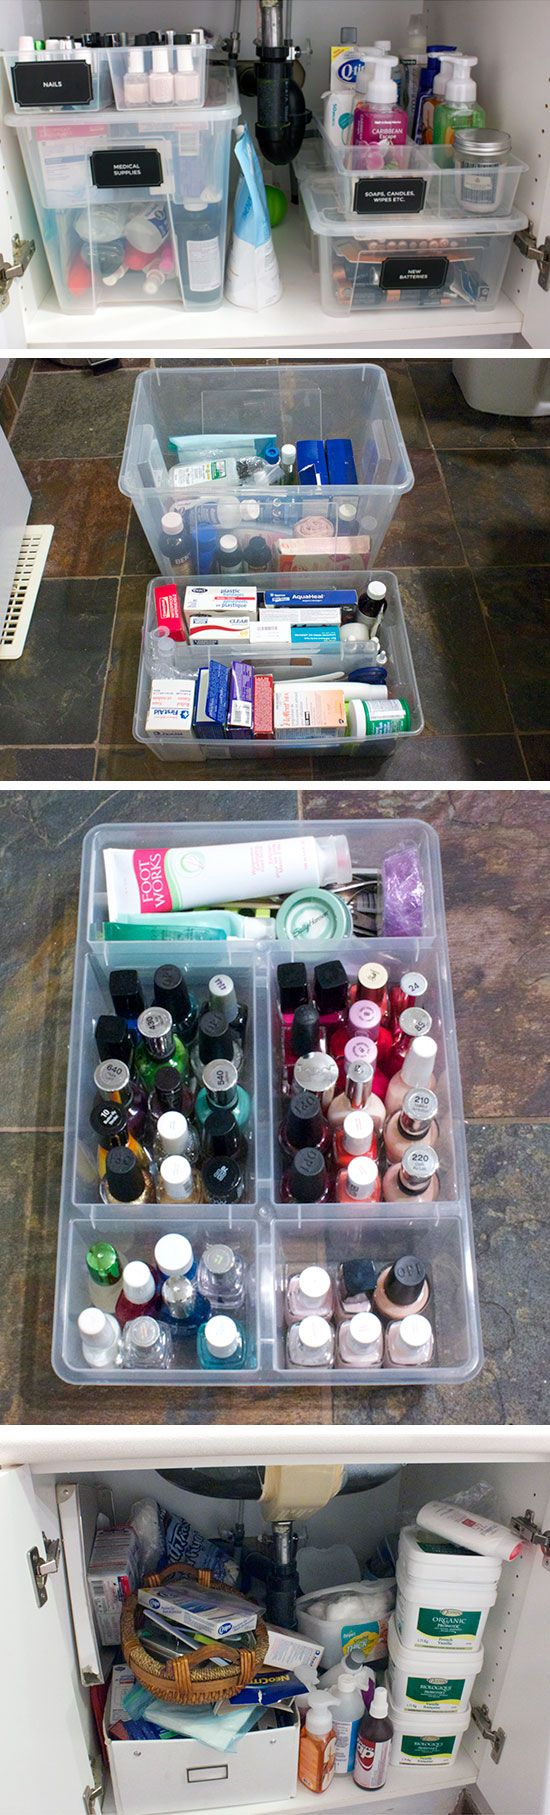 Bathroom storage - Organize under the sink with plastic containers